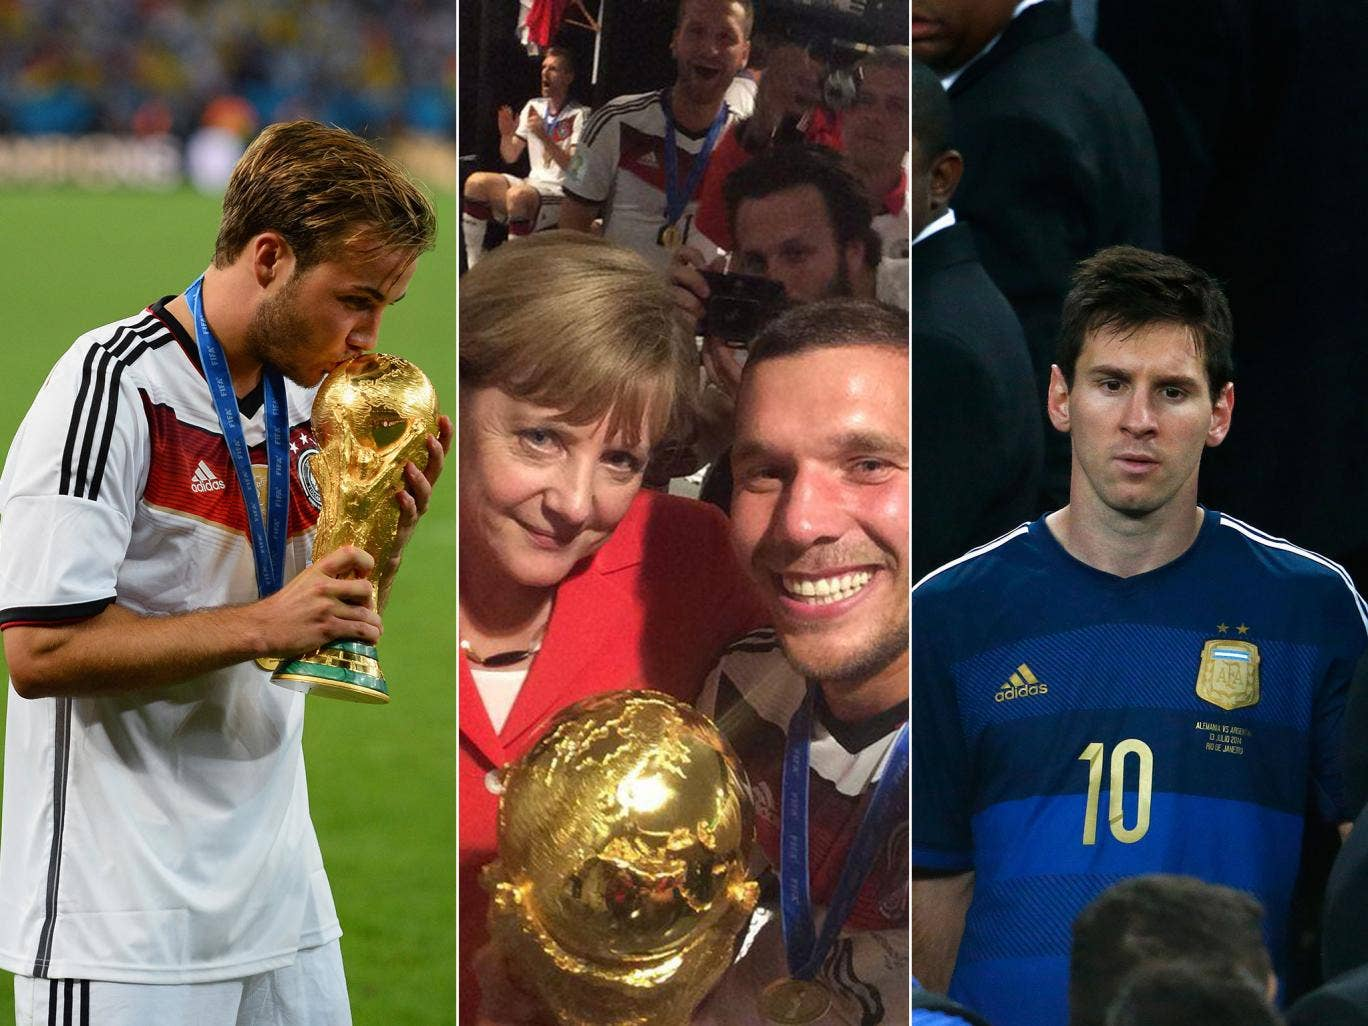 Mario Gotze kisses the World Cup, Angela Merkel poses with Lukas Podolski, and Lionel Messi walks off the stage after Argentina's defeat